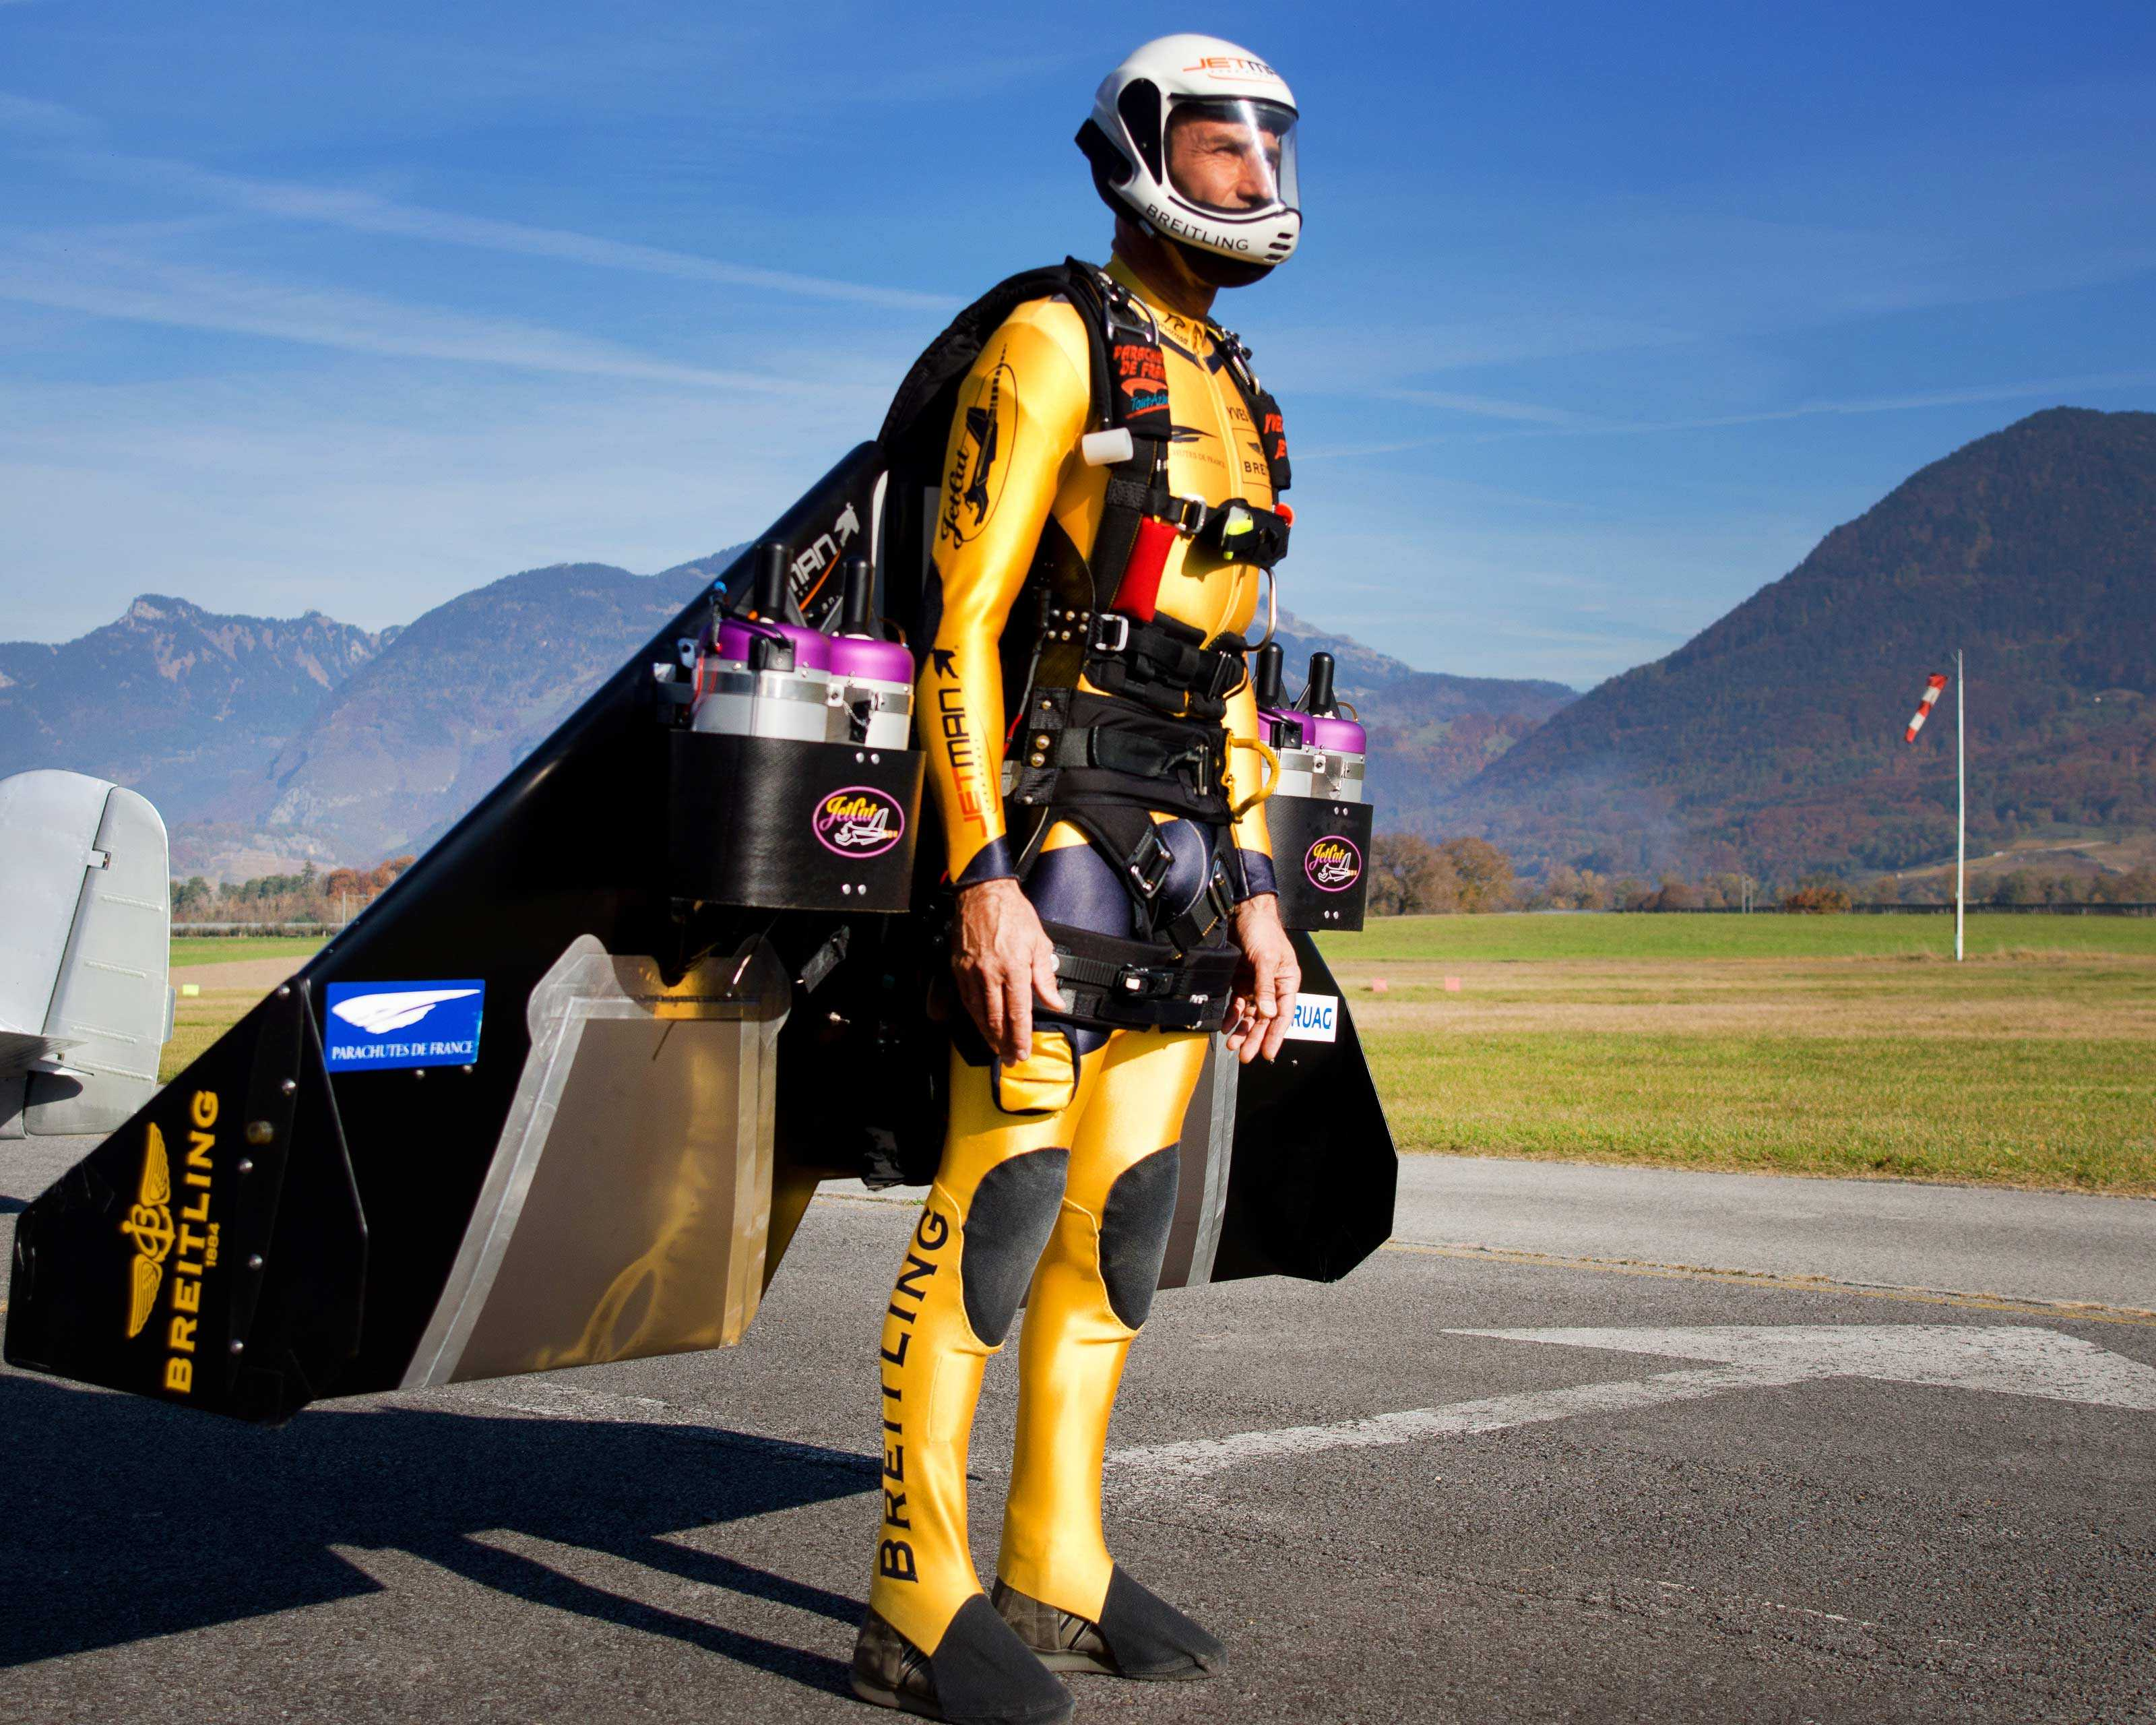 Decision Wing For Yves Rossy Alias Quot Jetman Quot